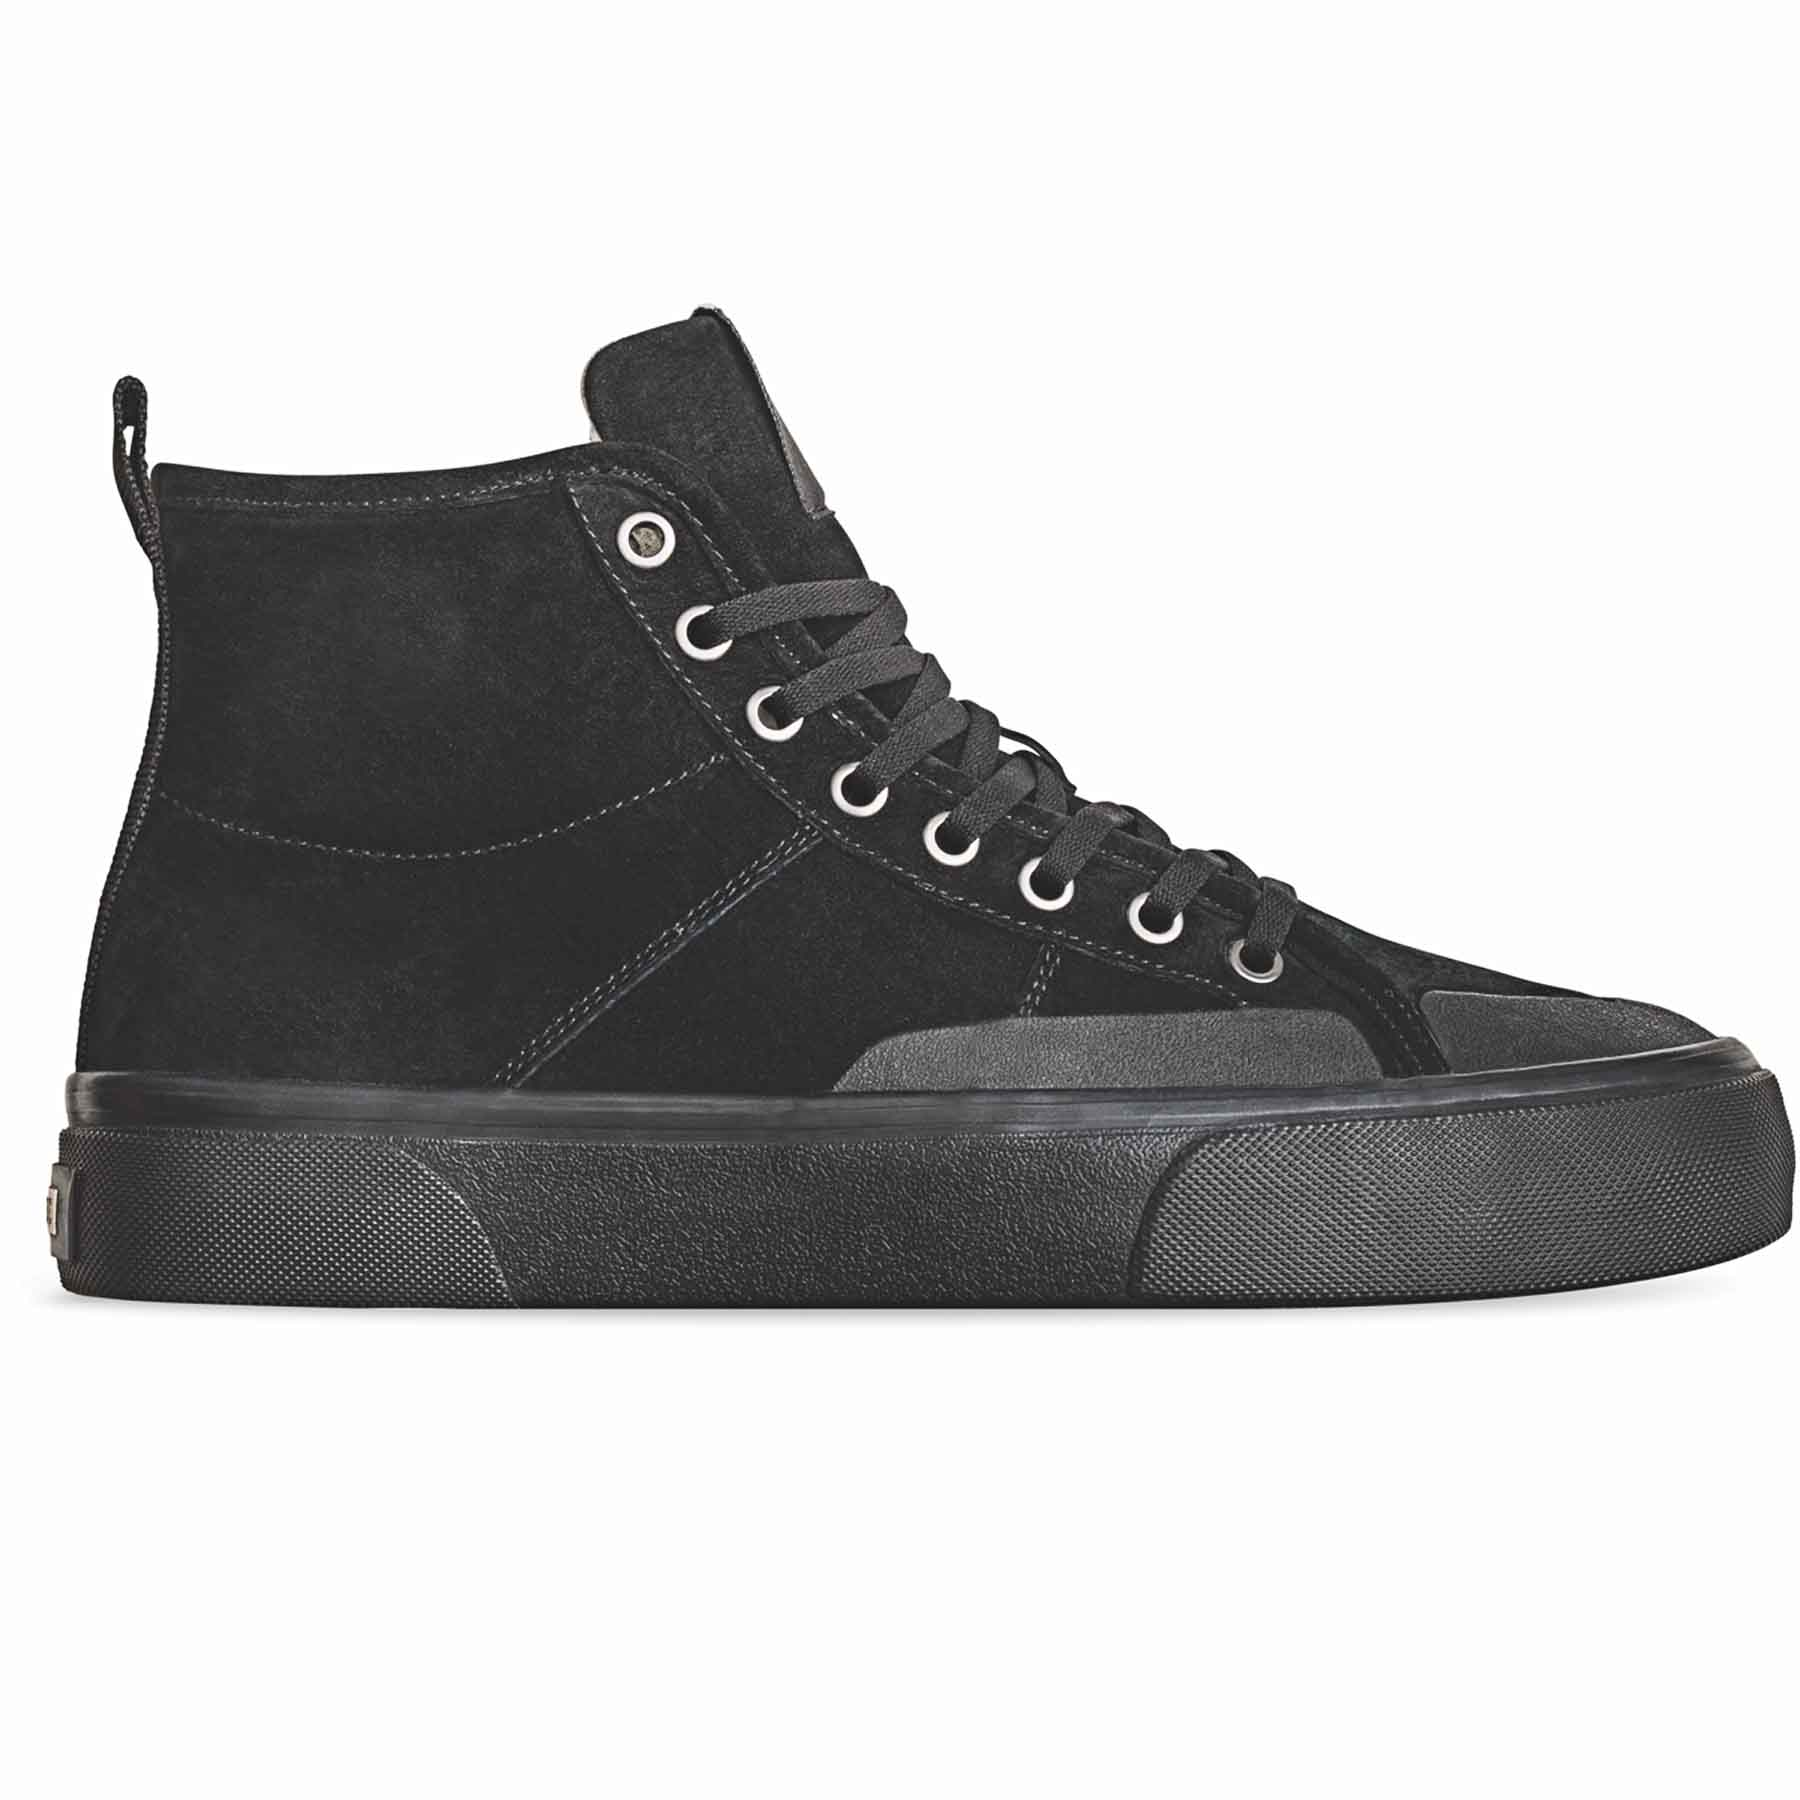 Globe Los Angered II - High Top Skate Shoes - Black Wolverine / Montano